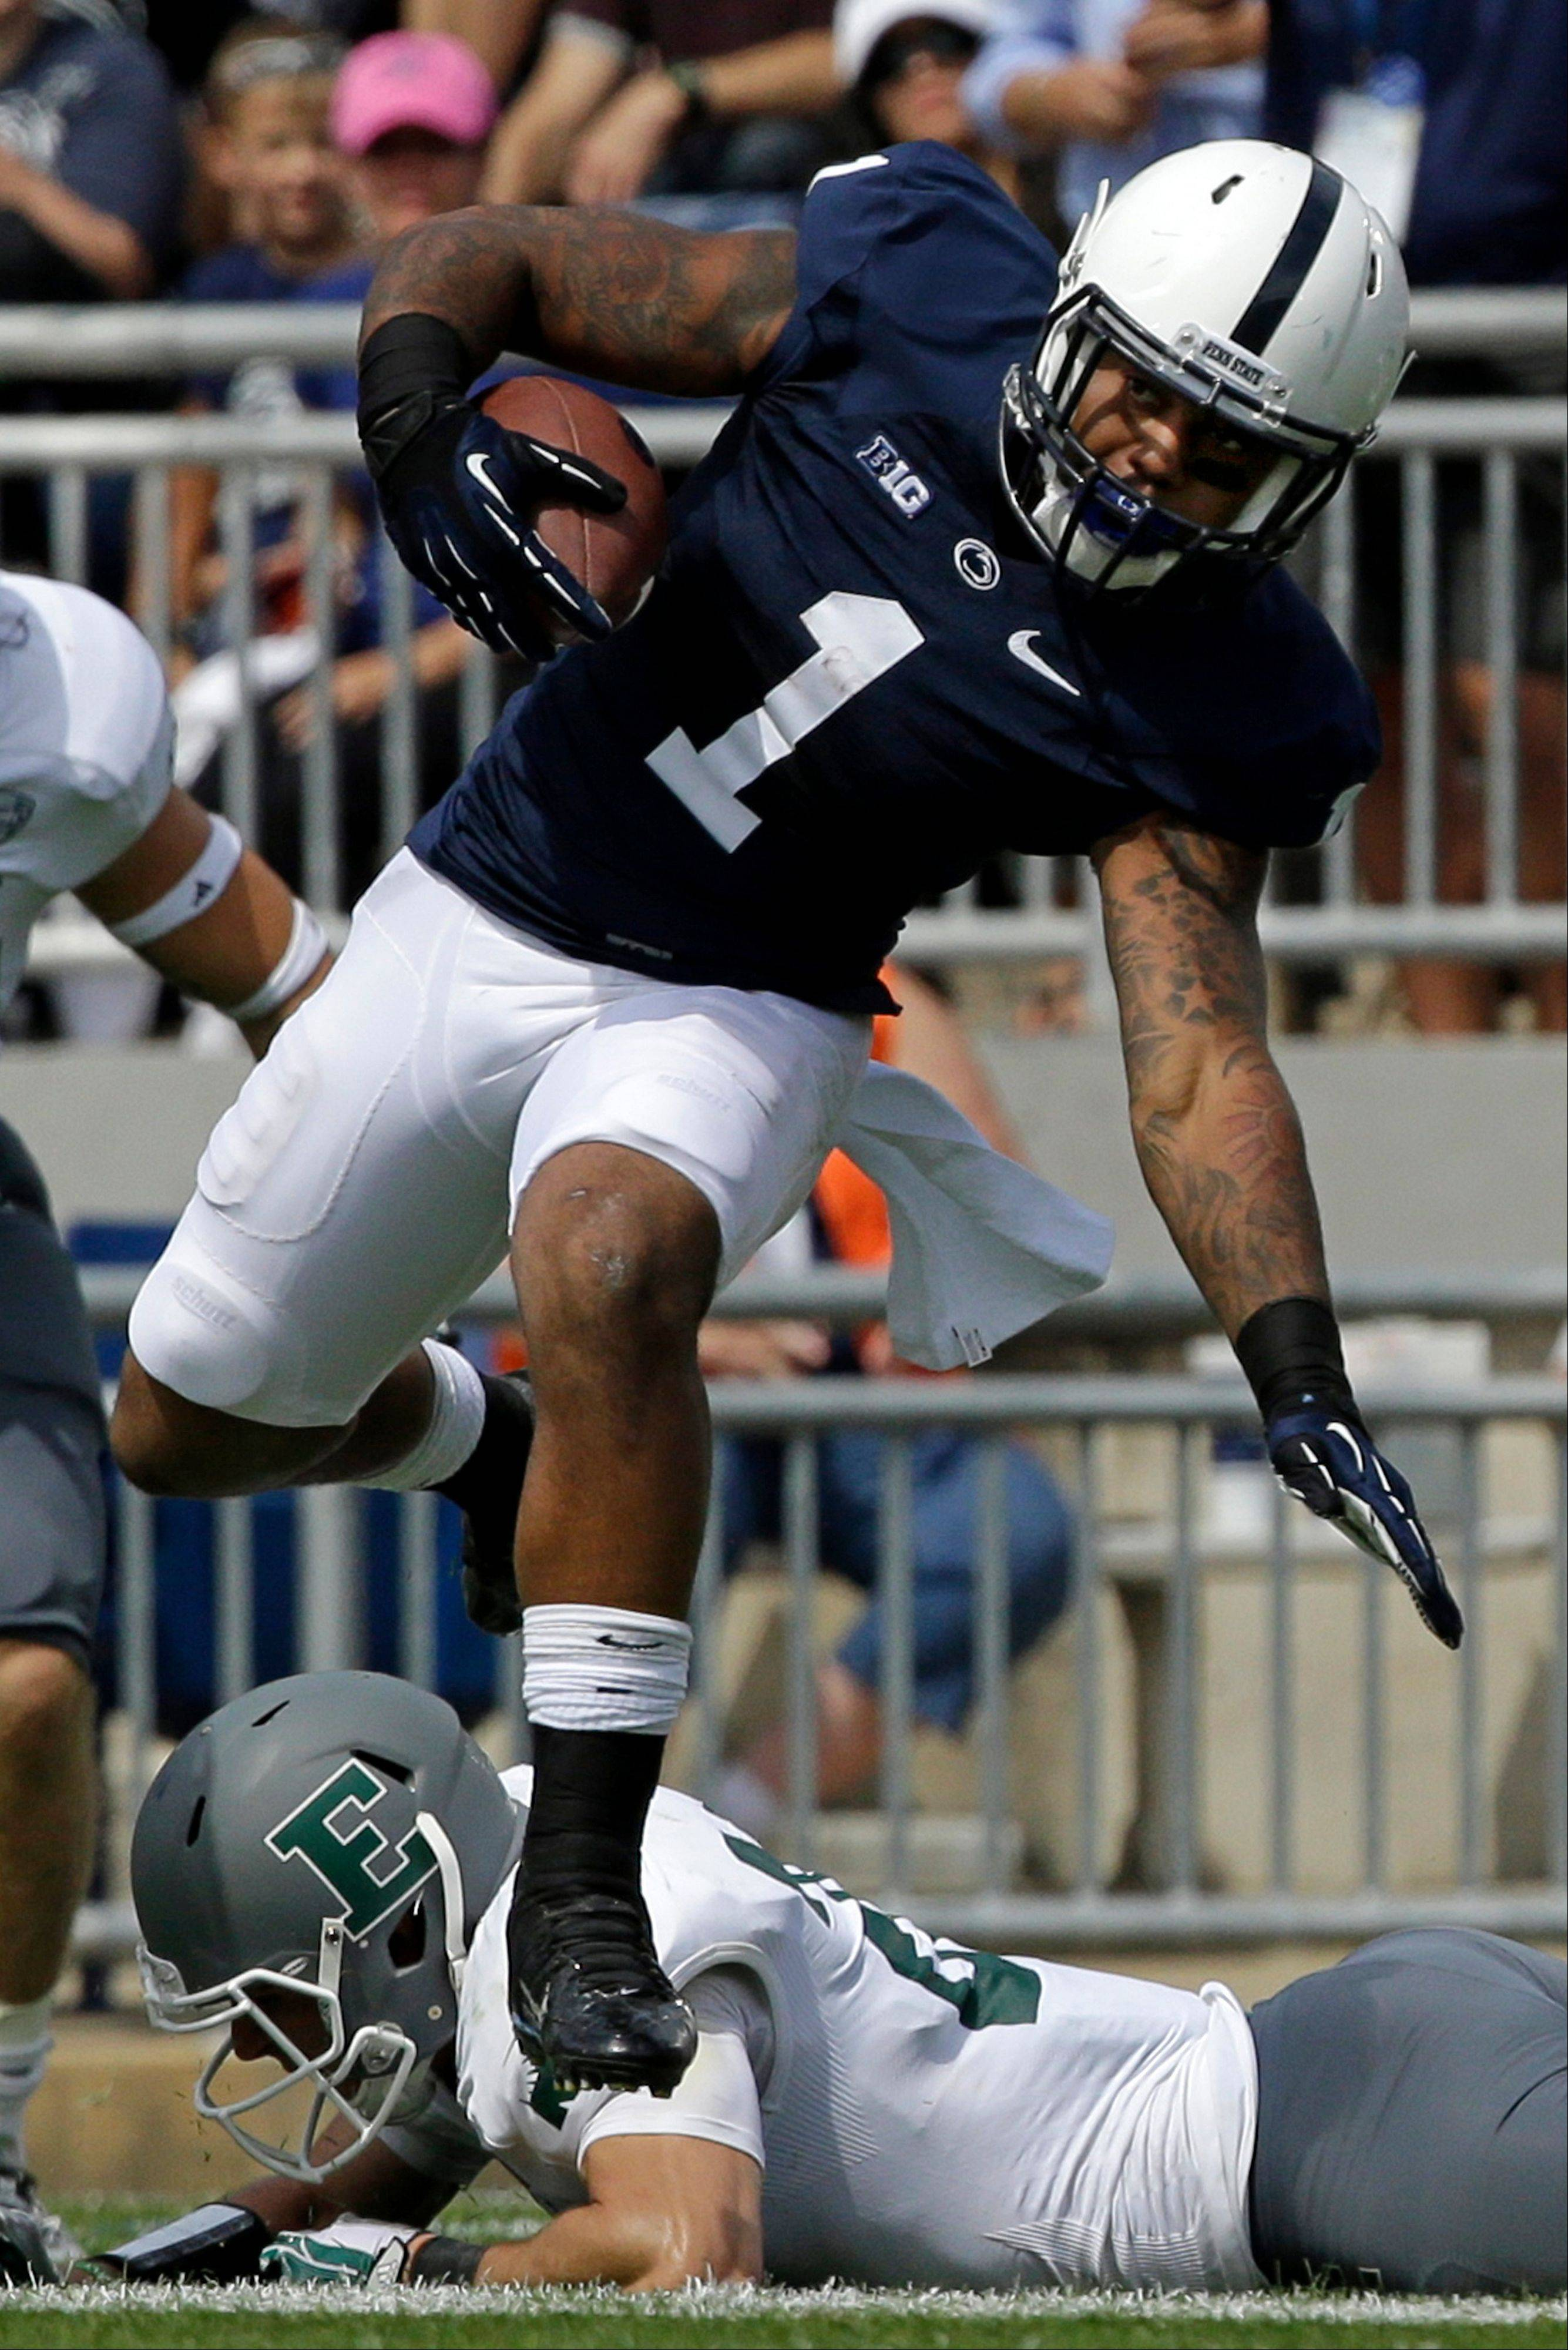 Penn State running back Bill Belton leaps over an Eastern Michigan defender during the second quarter Saturday's game in State College, Pa.